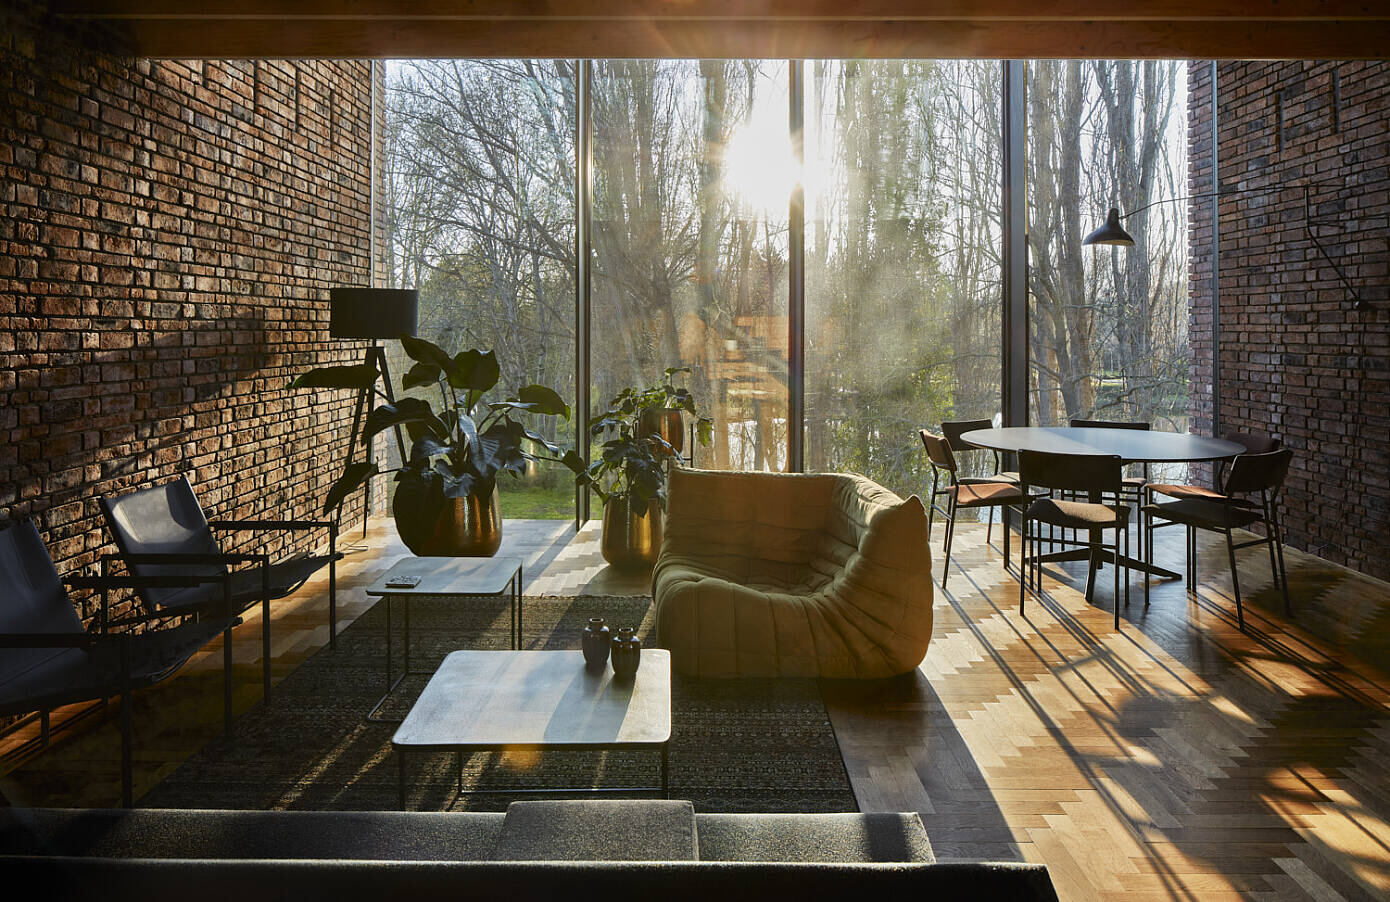 Brick House with Rammed Earth Wall by Ast77